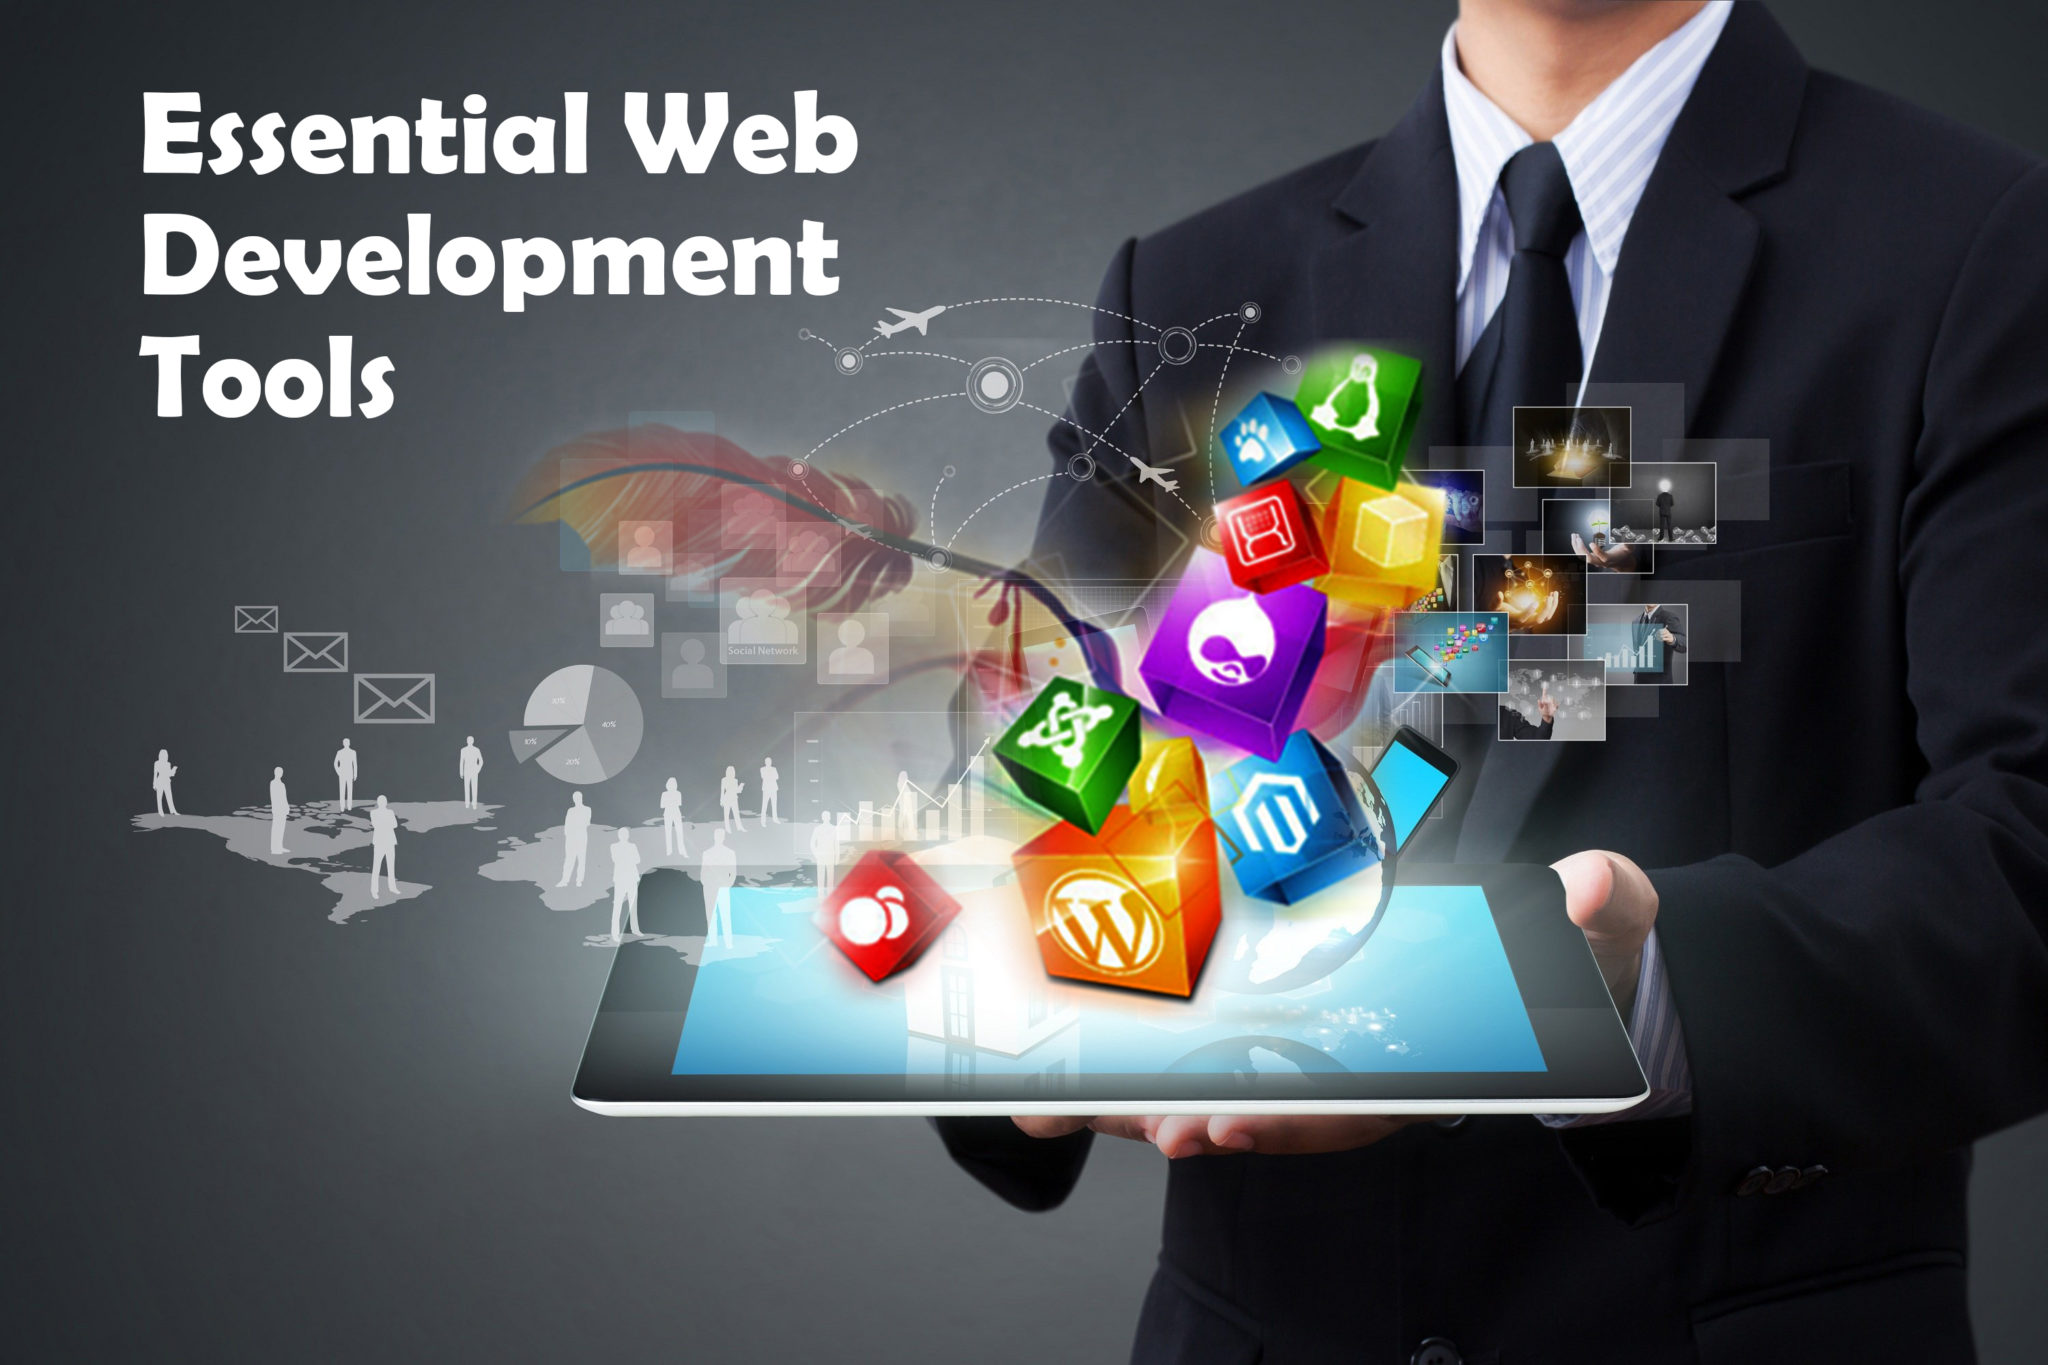 Essential Web Development Tools